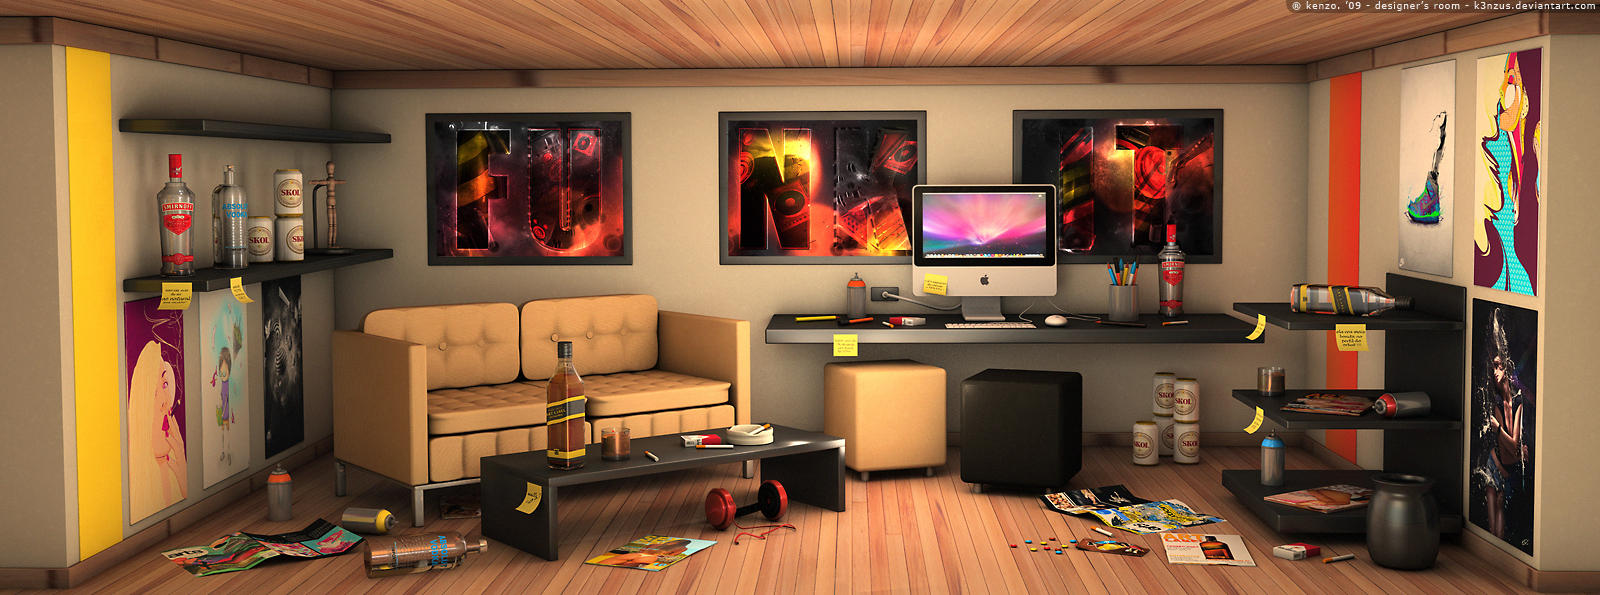 28+ [ room creater ]   interior design there are some ingenious